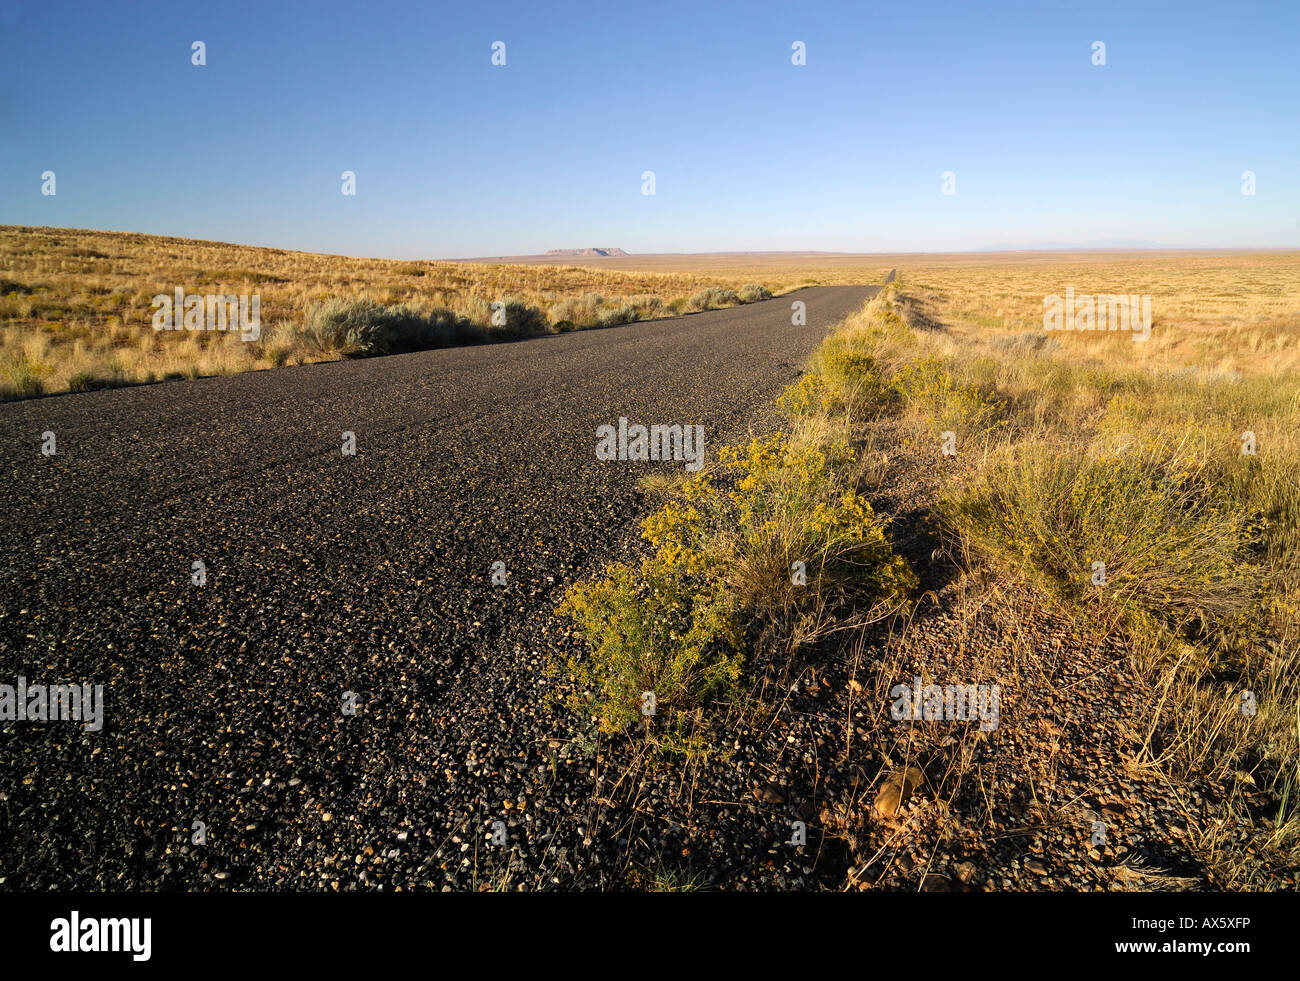 Country road next to Interstate 70 (I-70) near Hanksville, Utah, USA - Stock Image